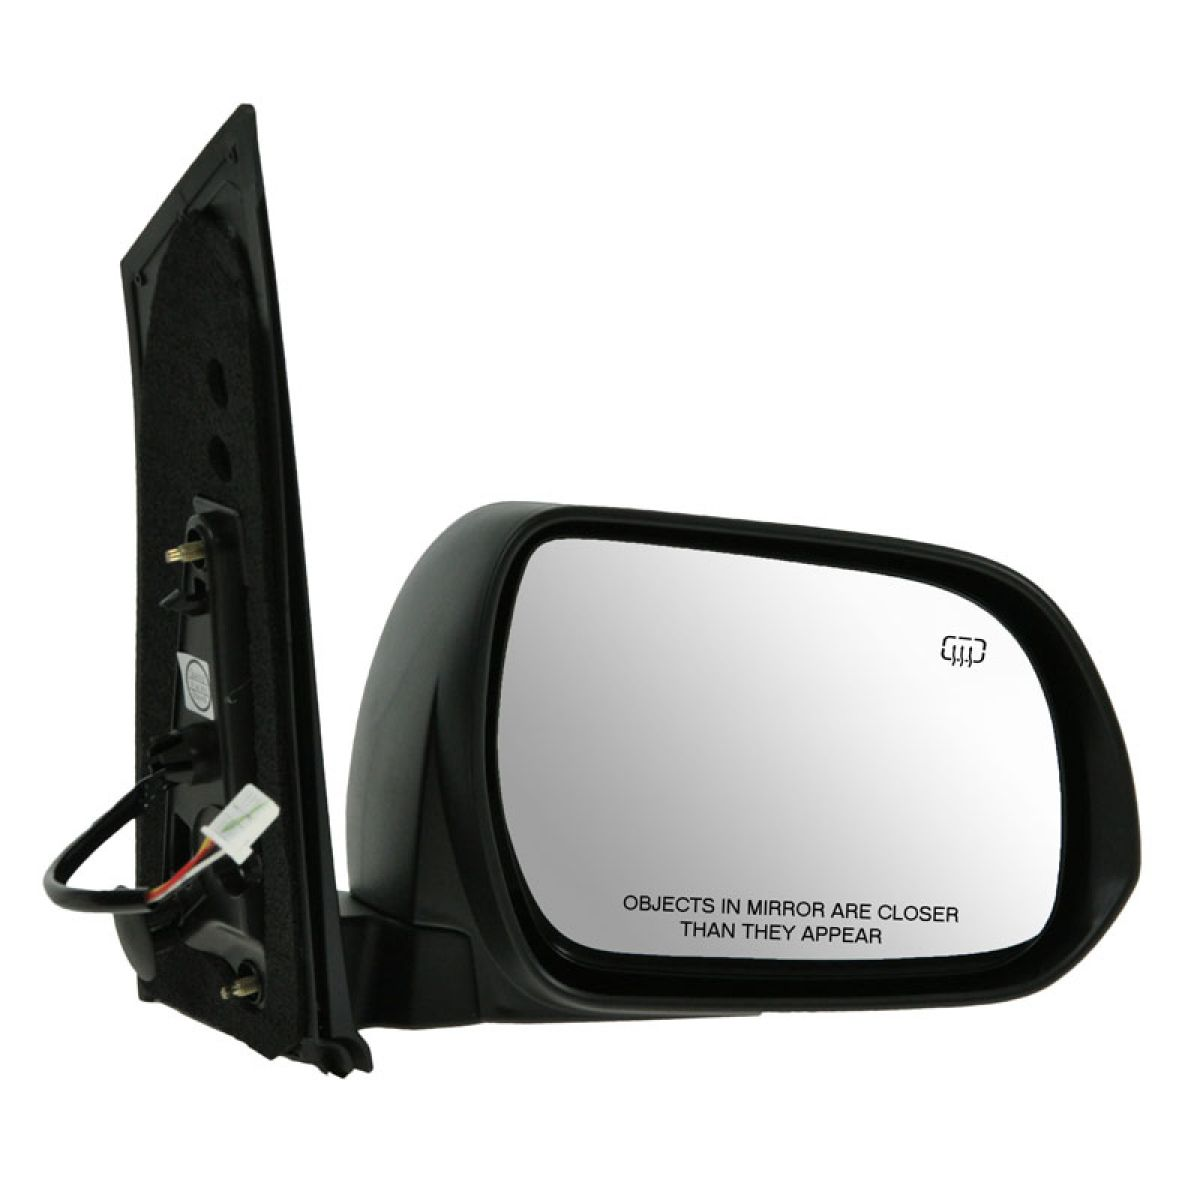 mirror power heated smooth black passenger side right rh for 11 12